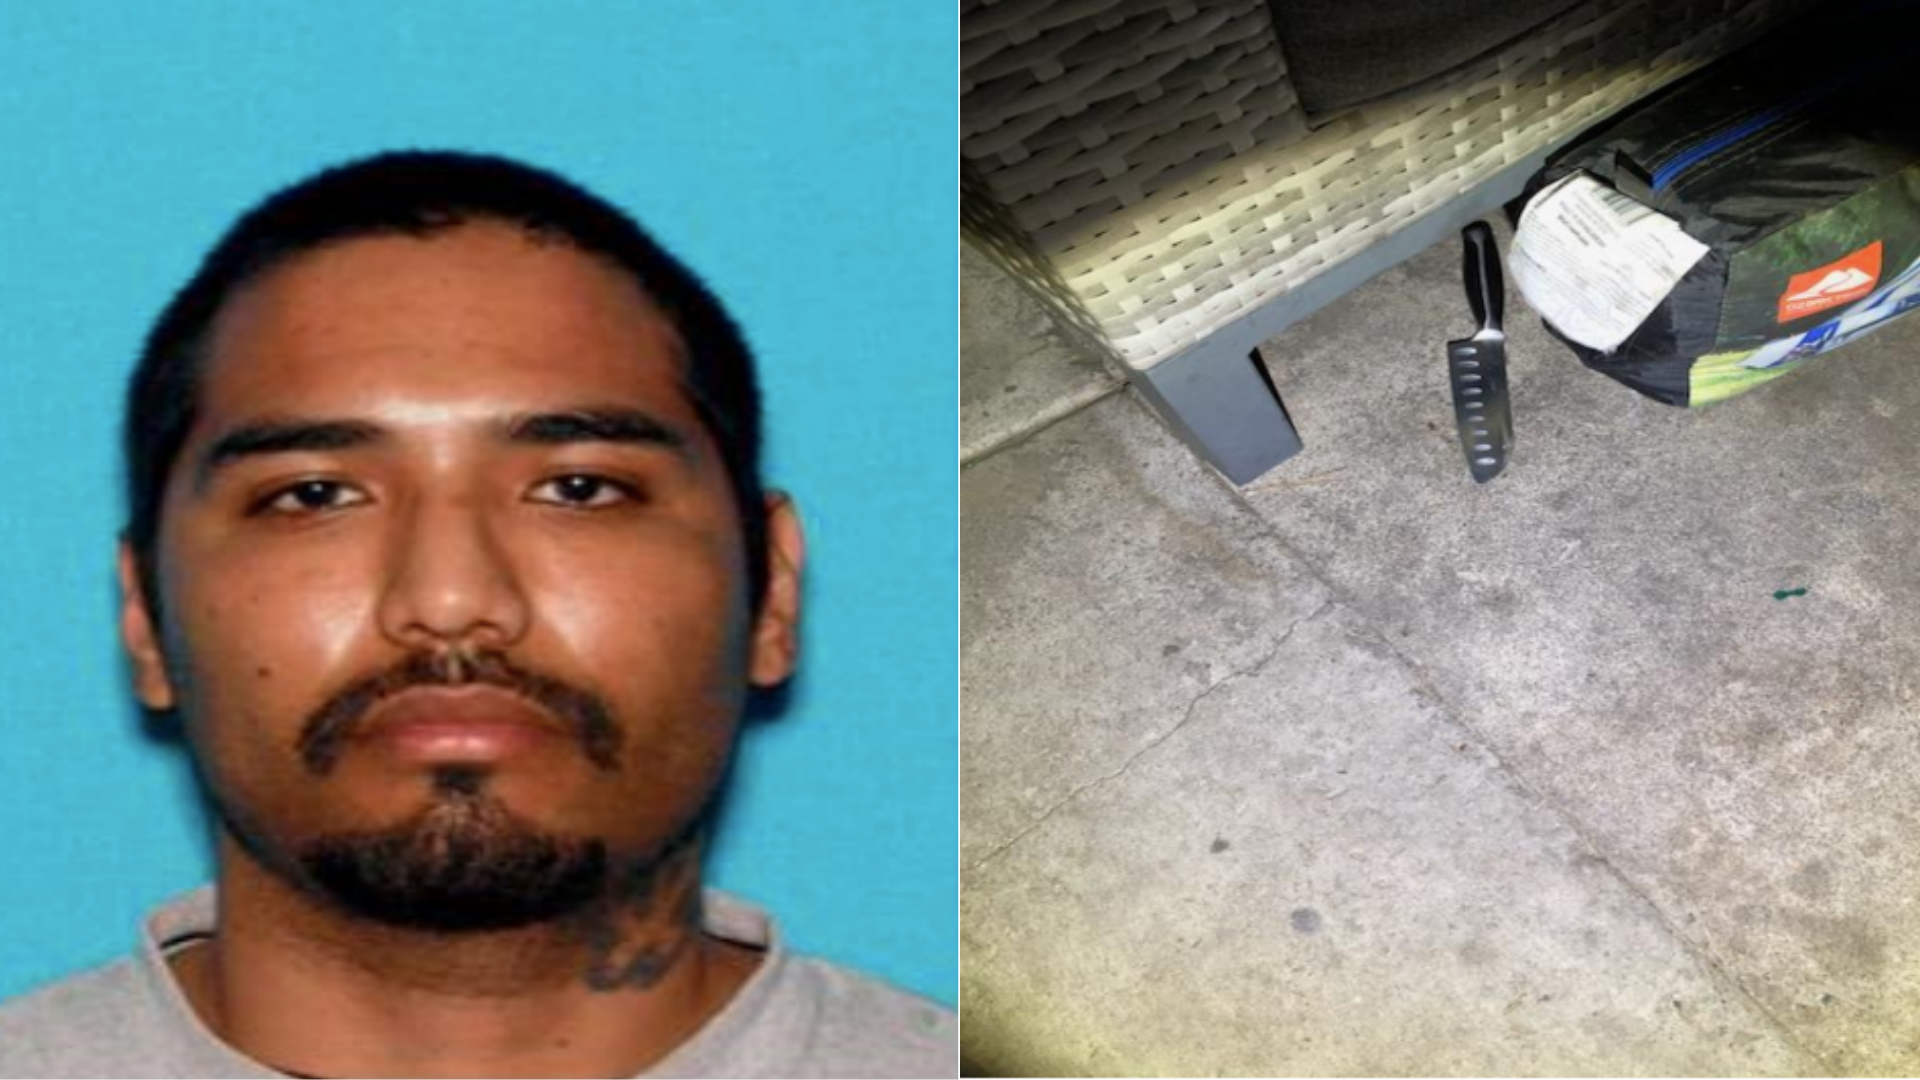 The San Bernardino Police Department released these photos of Nicolas Segura and a knife officers said they recovered from the scene at a home in the 2300 block of W. Adams Street in San Bernardino on Nov. 27, 2020.